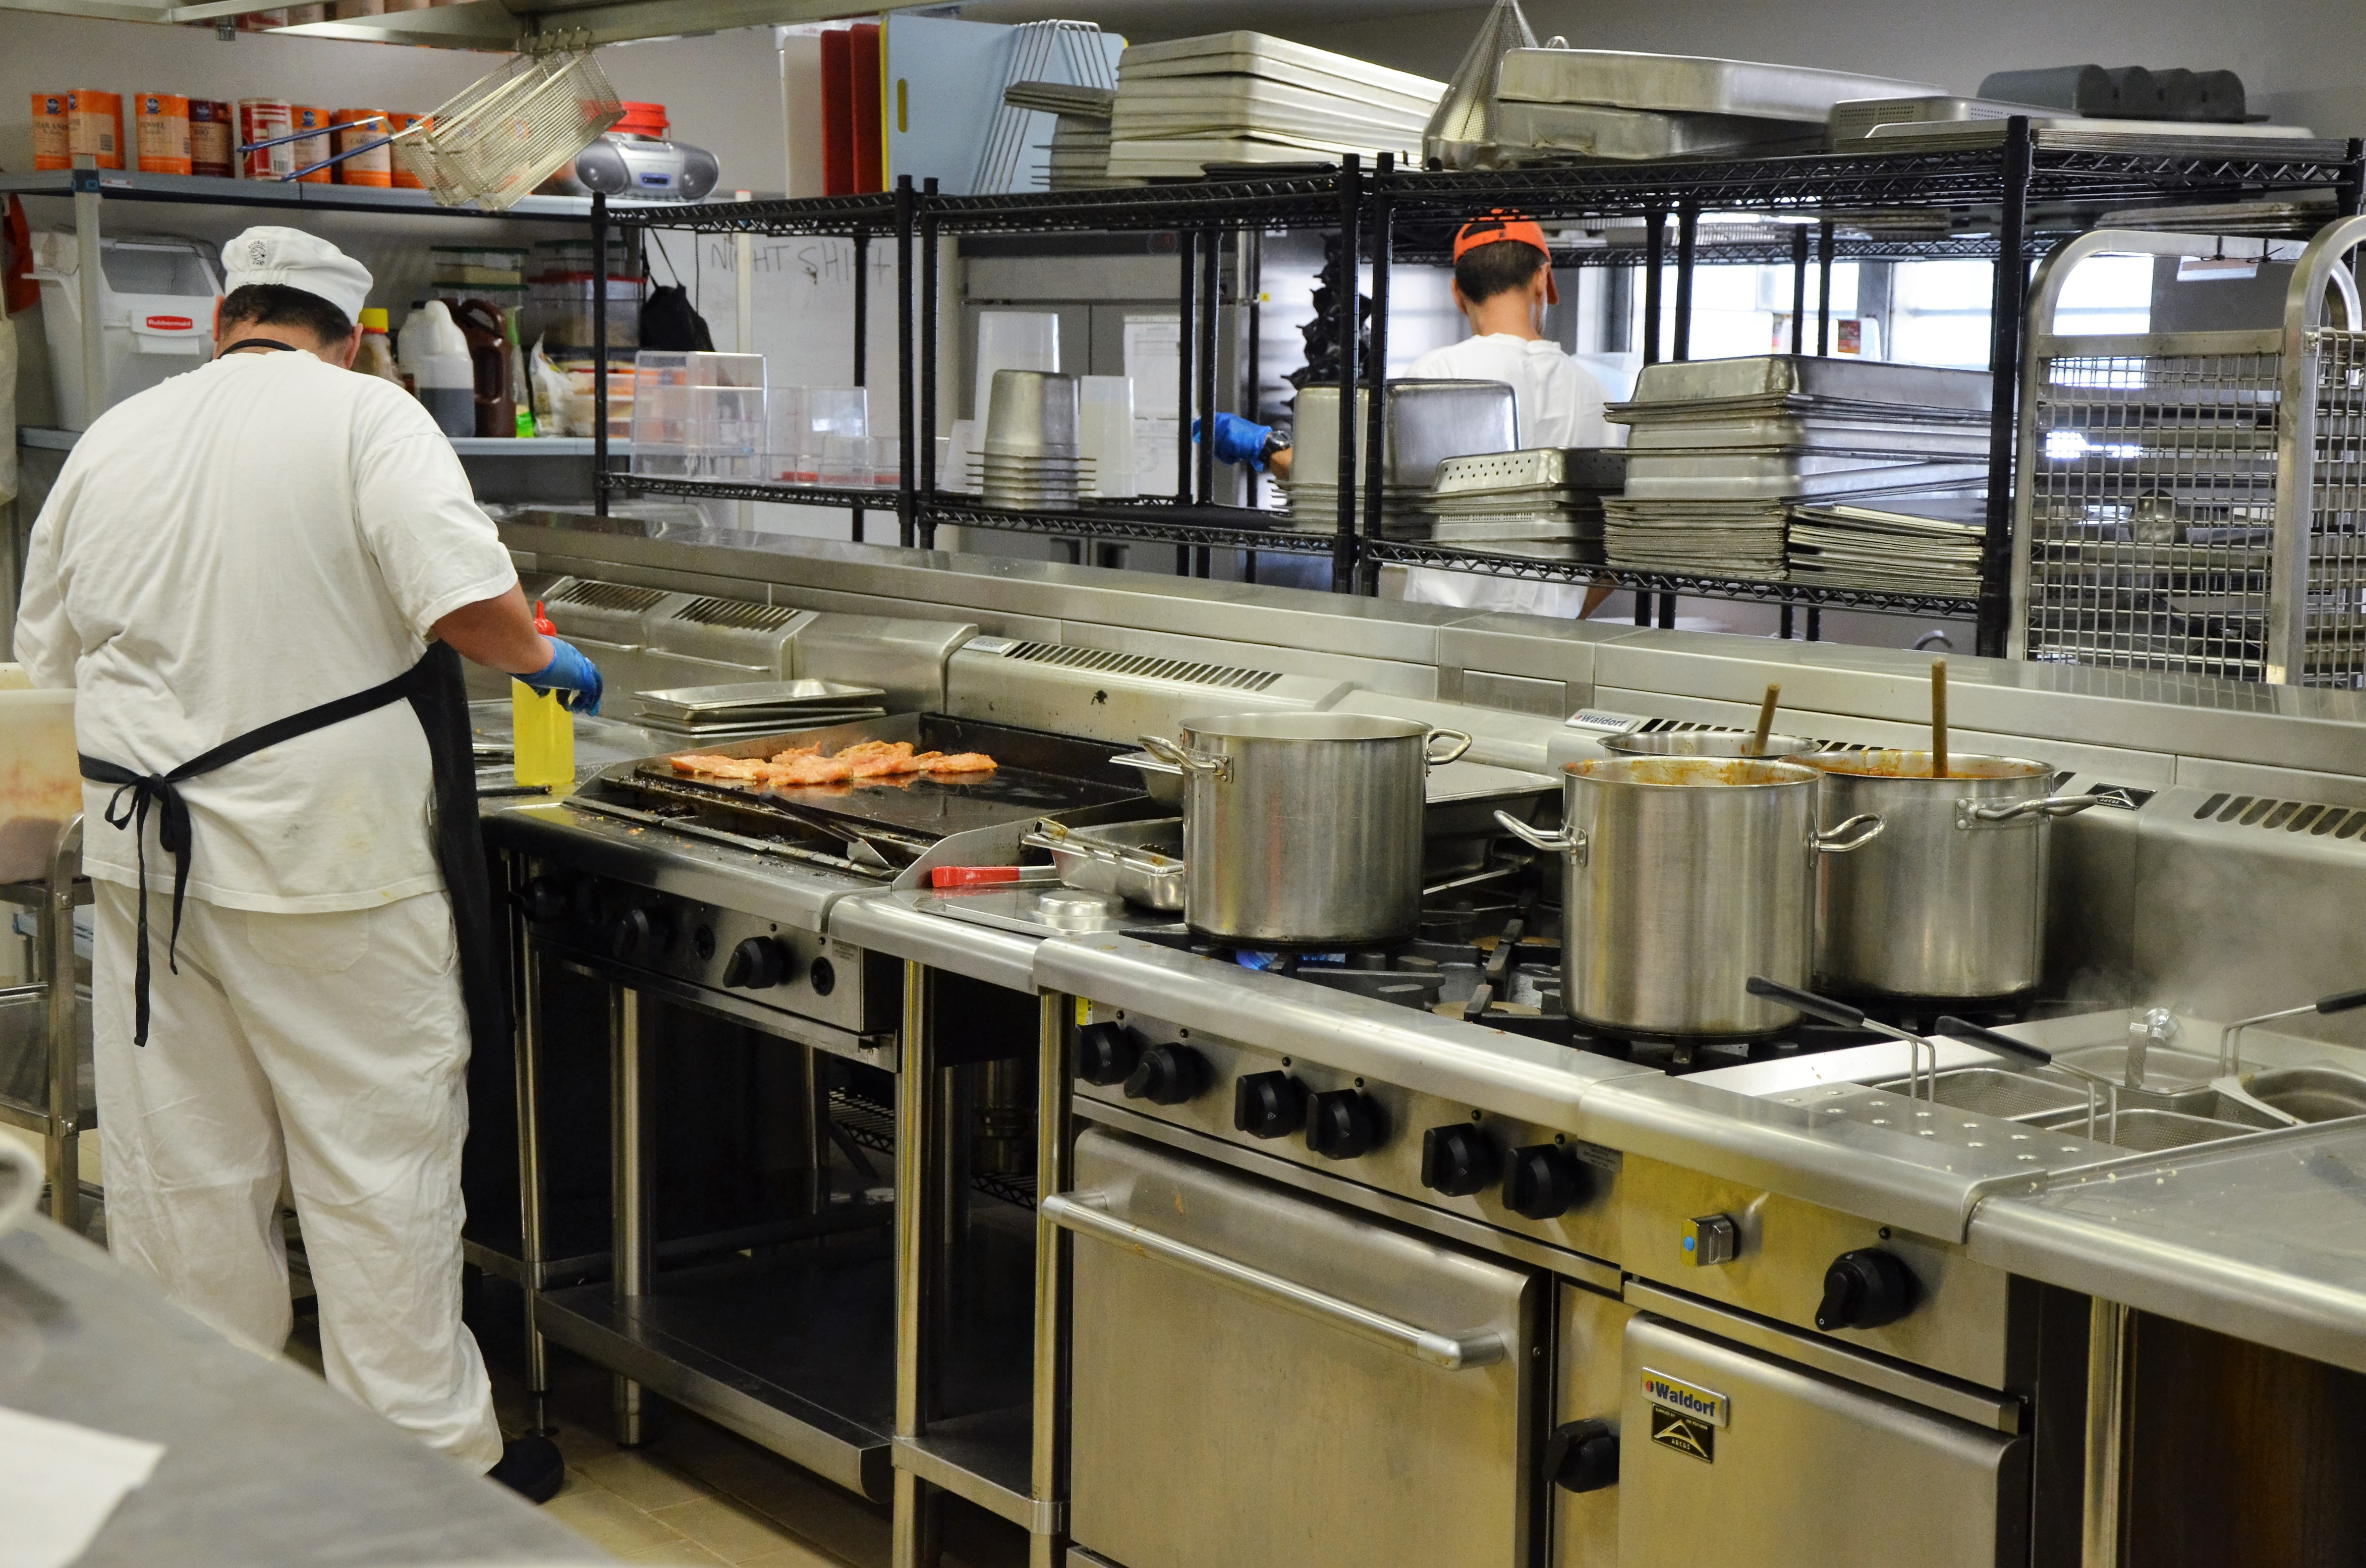 Acacia Prison created a new commercial-grade kitchen and hospitality suite featuring the latest technology and equipment.